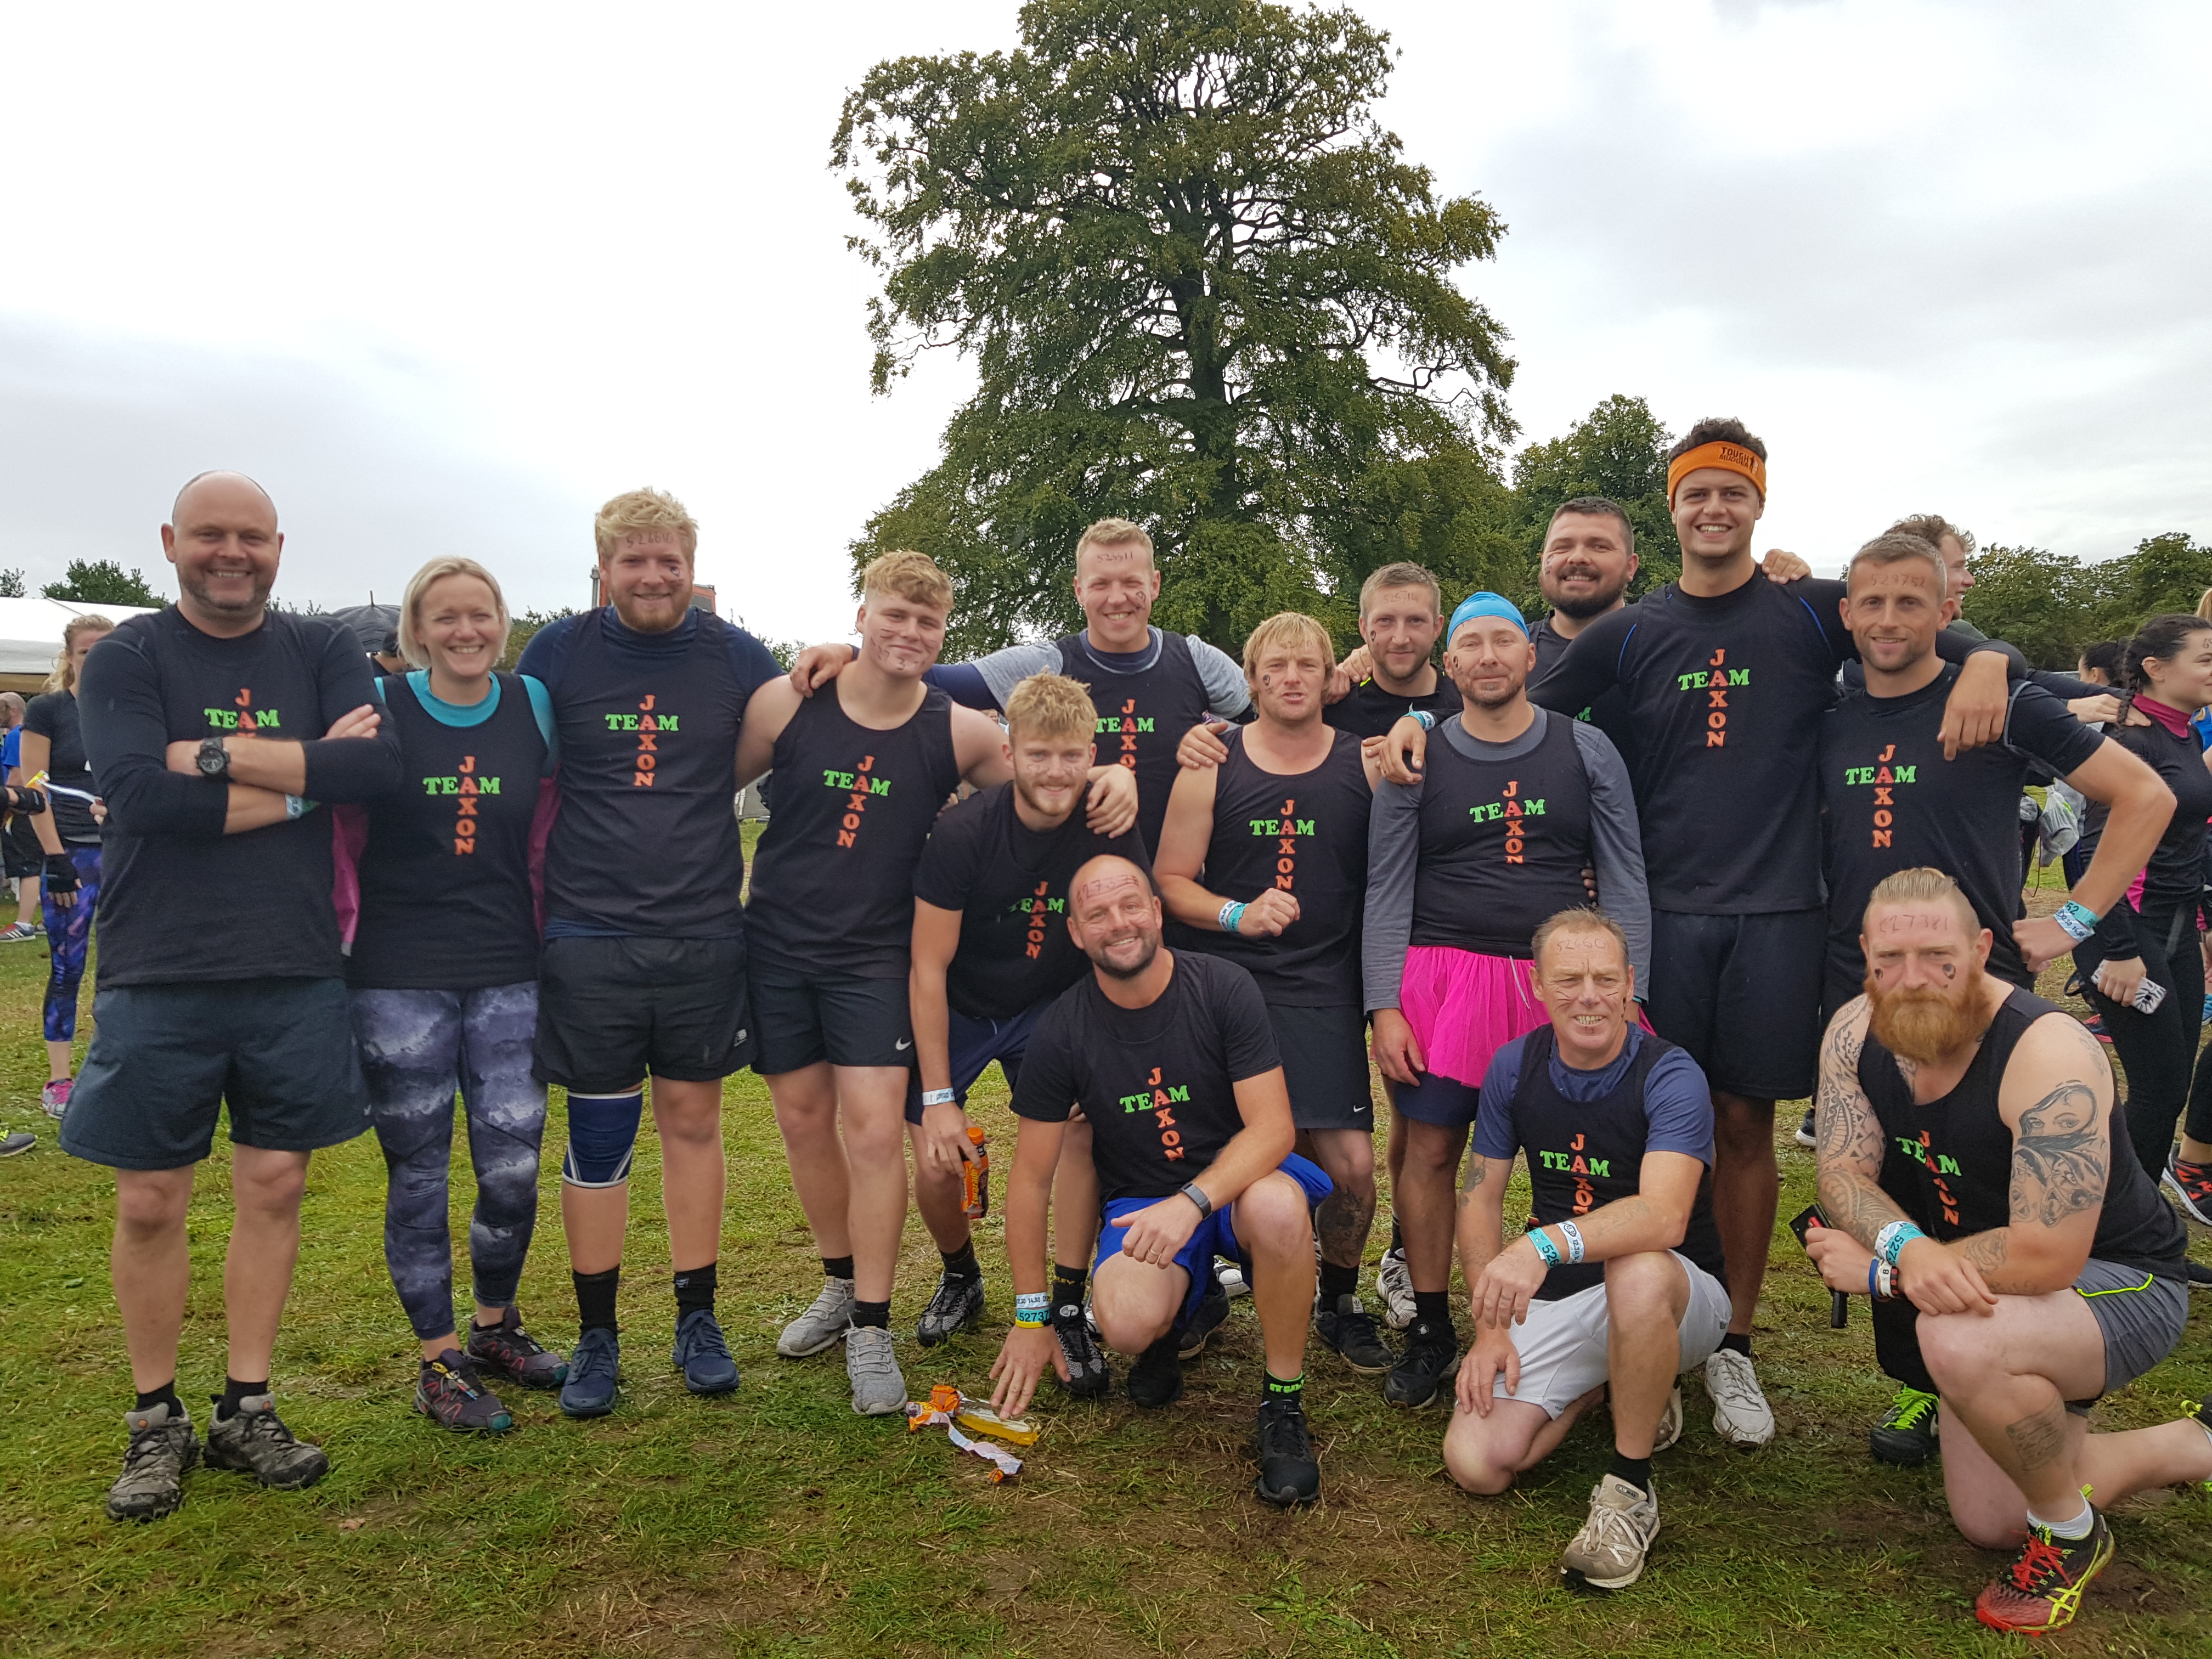 Our Team At Tough Mudder 2018 at Cholmondeley Castle